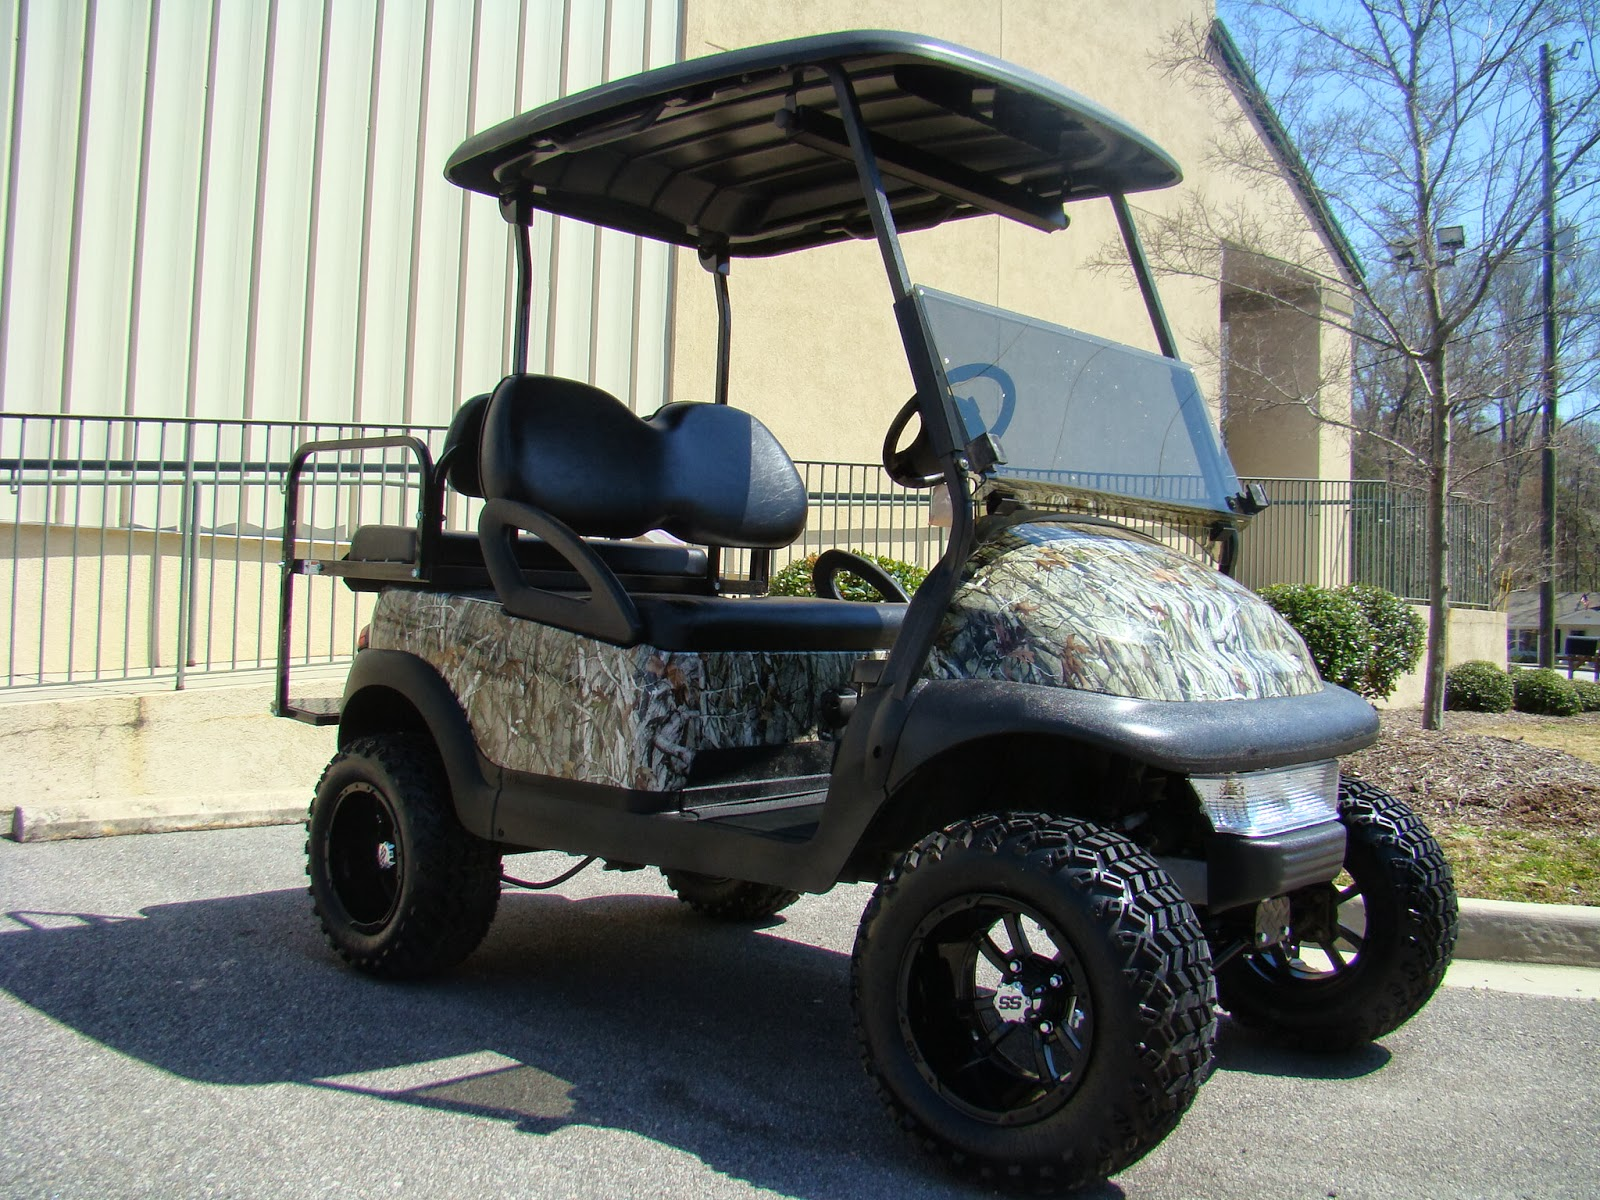 King Of Carts Is A Nationwide Distributor Golf Cart Parts And Offers Savings By Purchasing In Bulk Visit Us Online At Click Here For More Information